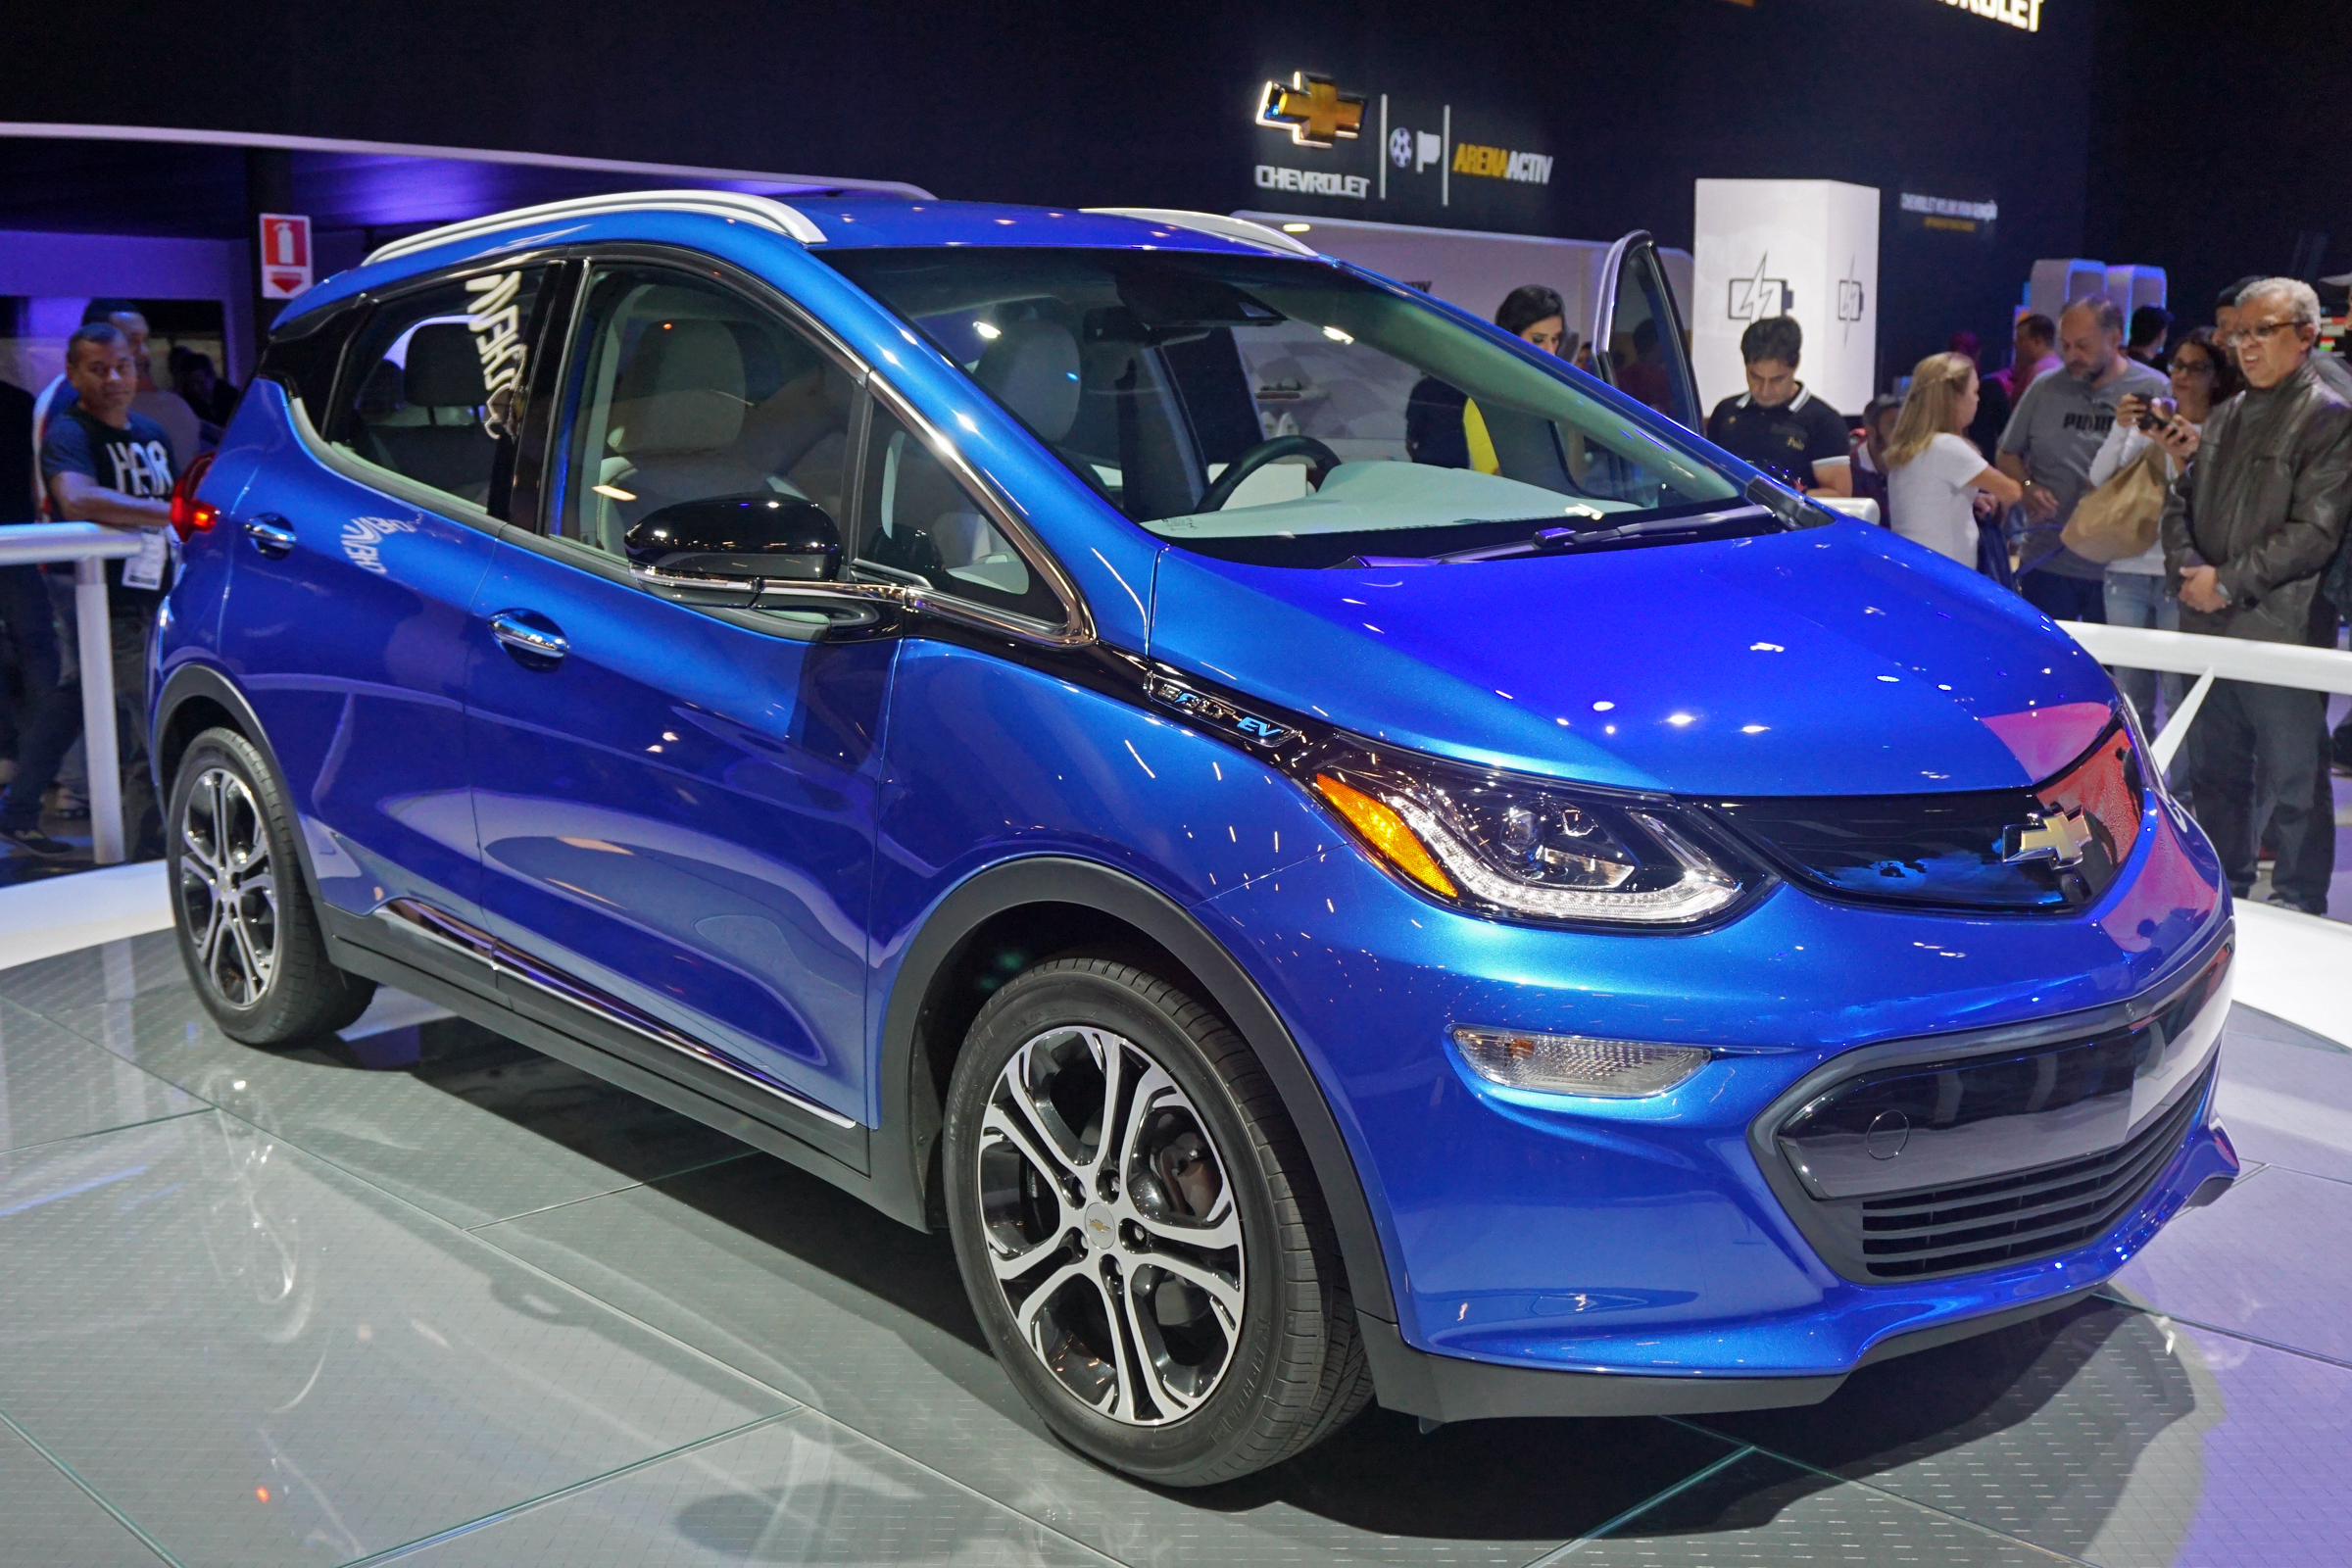 https://upload.wikimedia.org/wikipedia/commons/5/52/Chevrolet_Bolt_EV_SAO_2016_8771.jpg